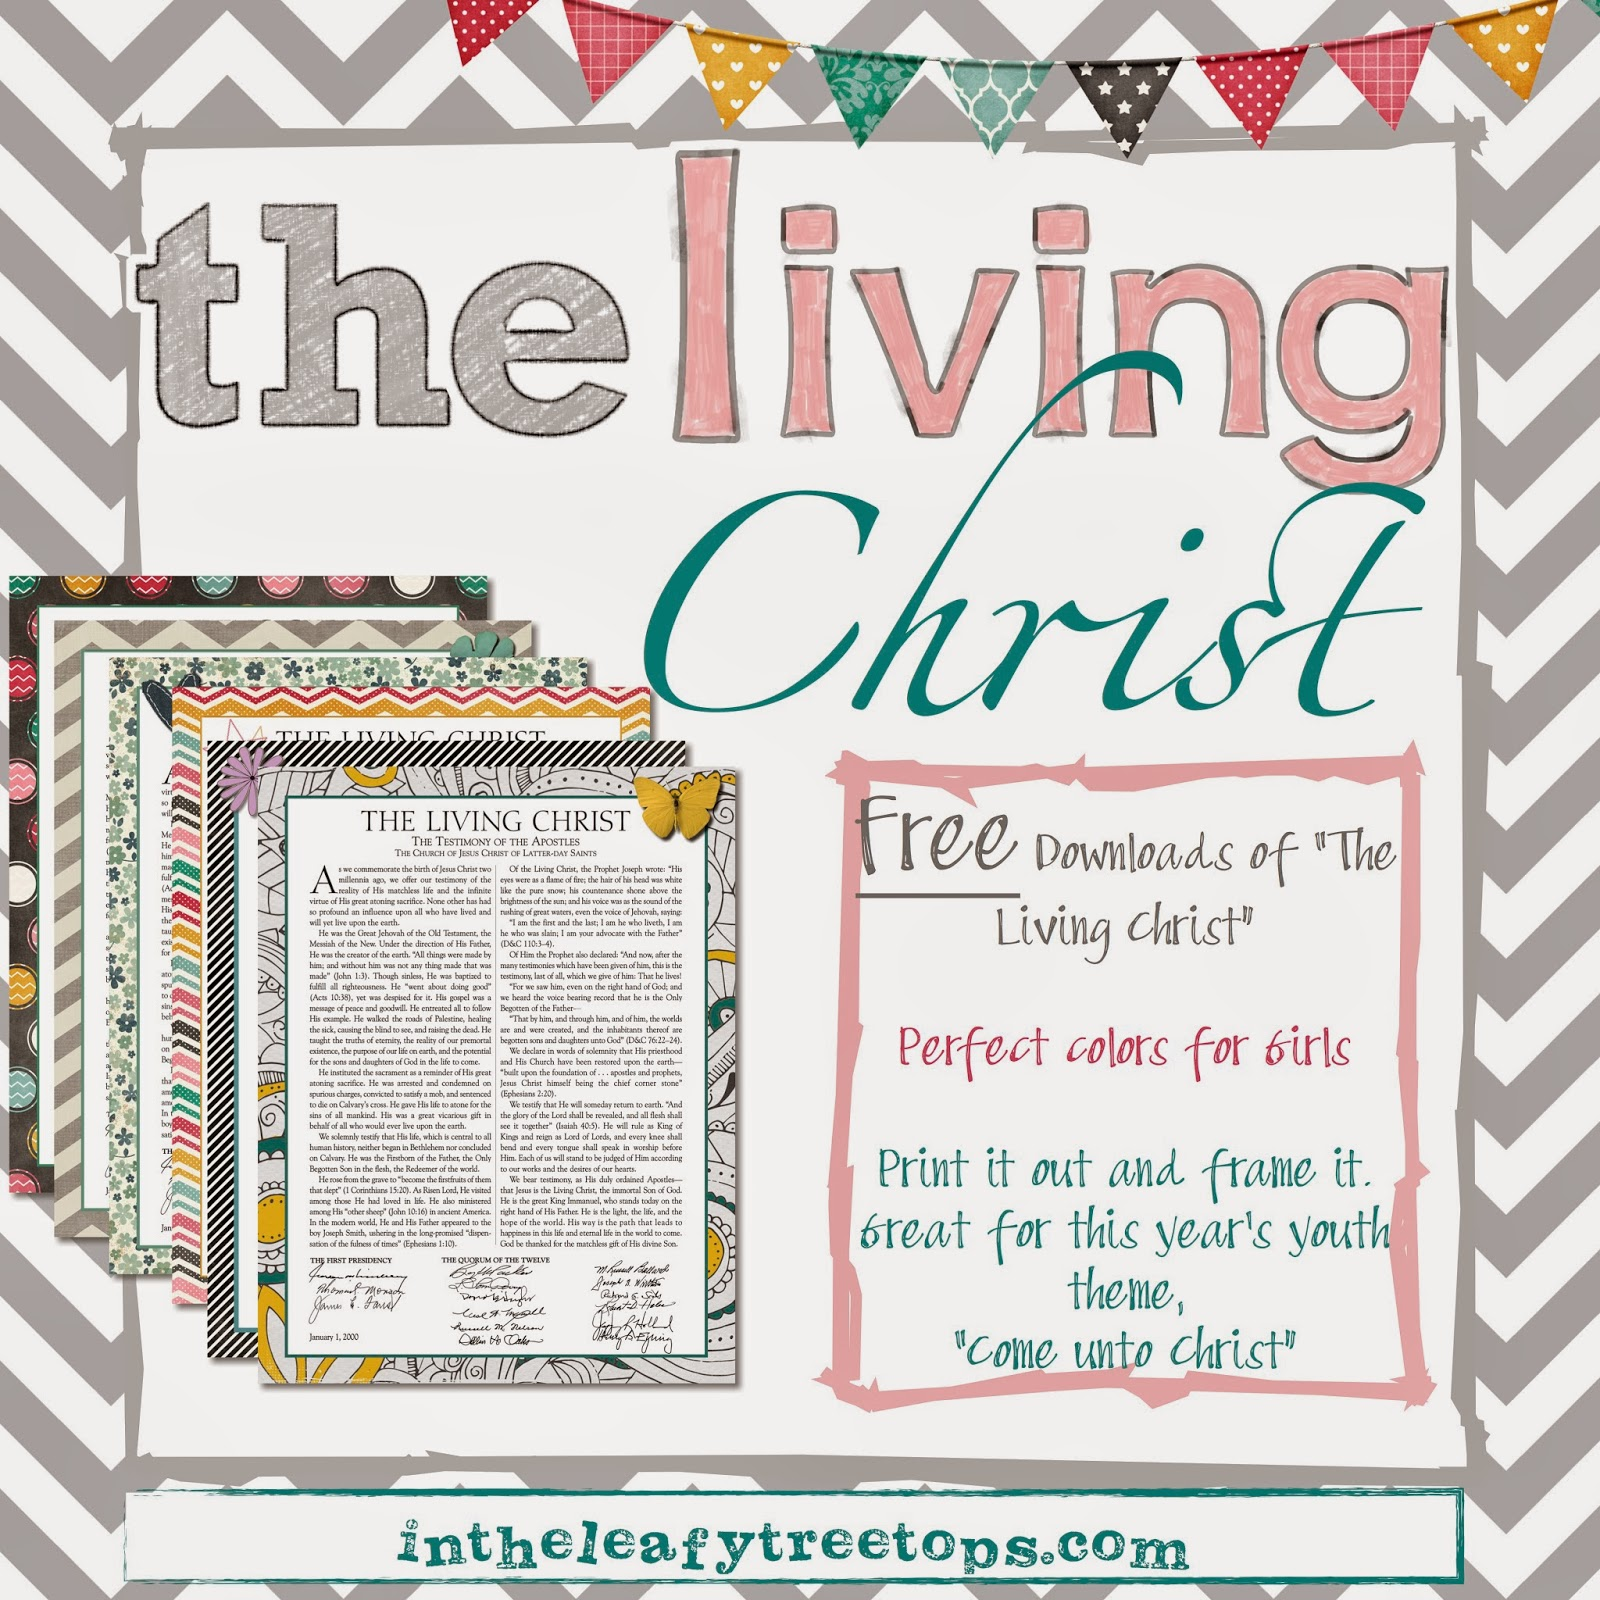 It's just an image of Simplicity The Living Christ Free Printable